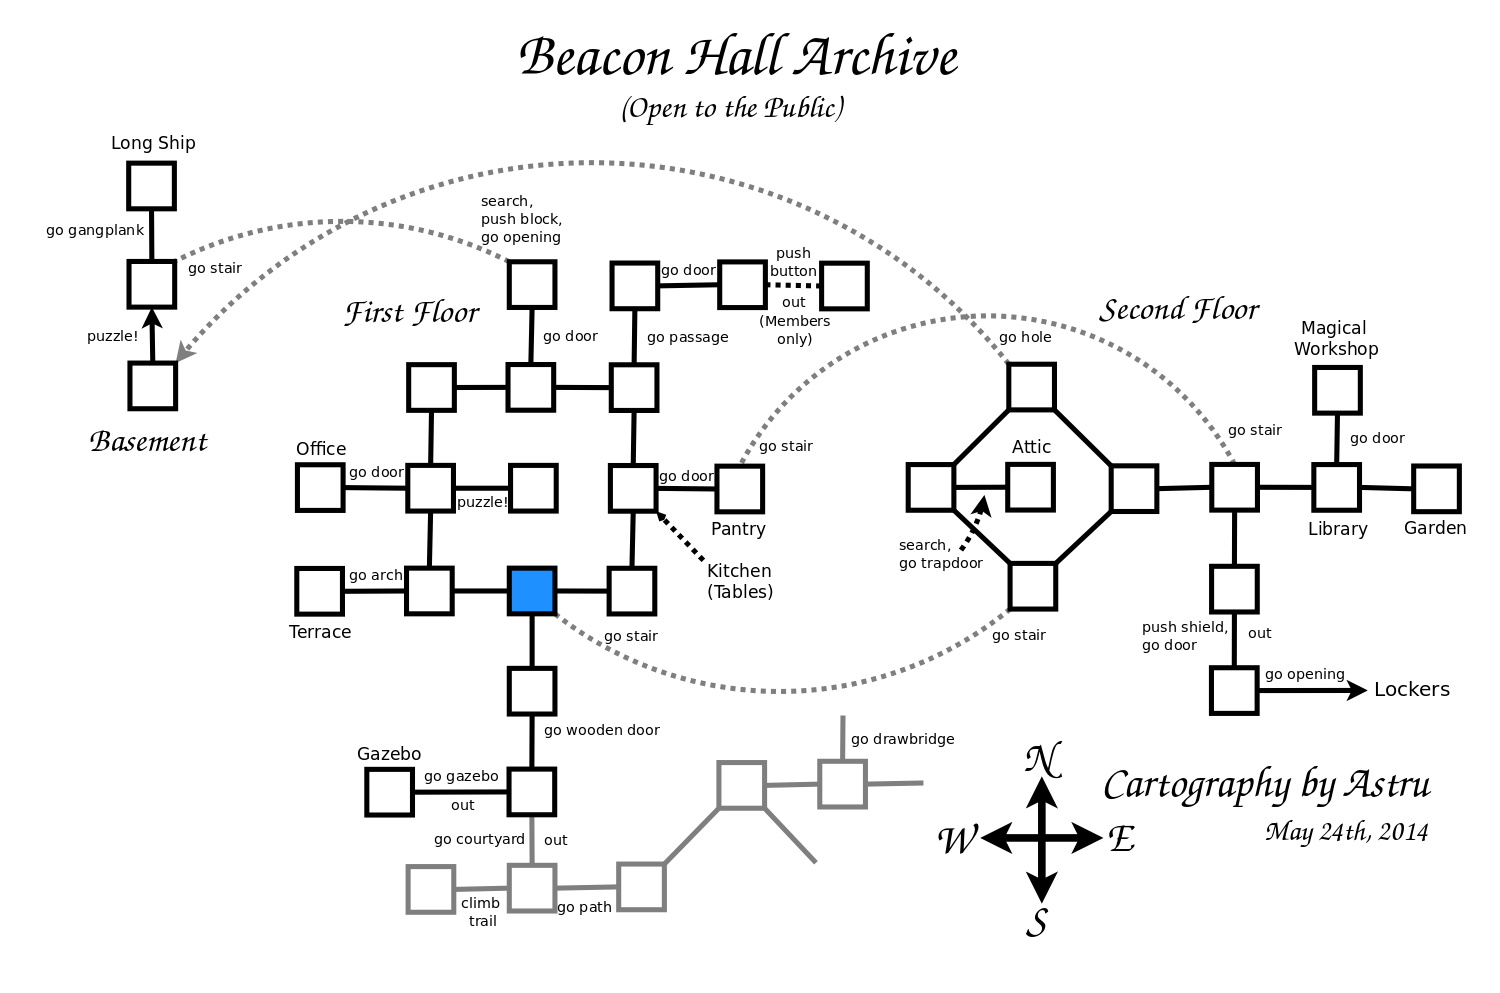 Beacon Hall Archive